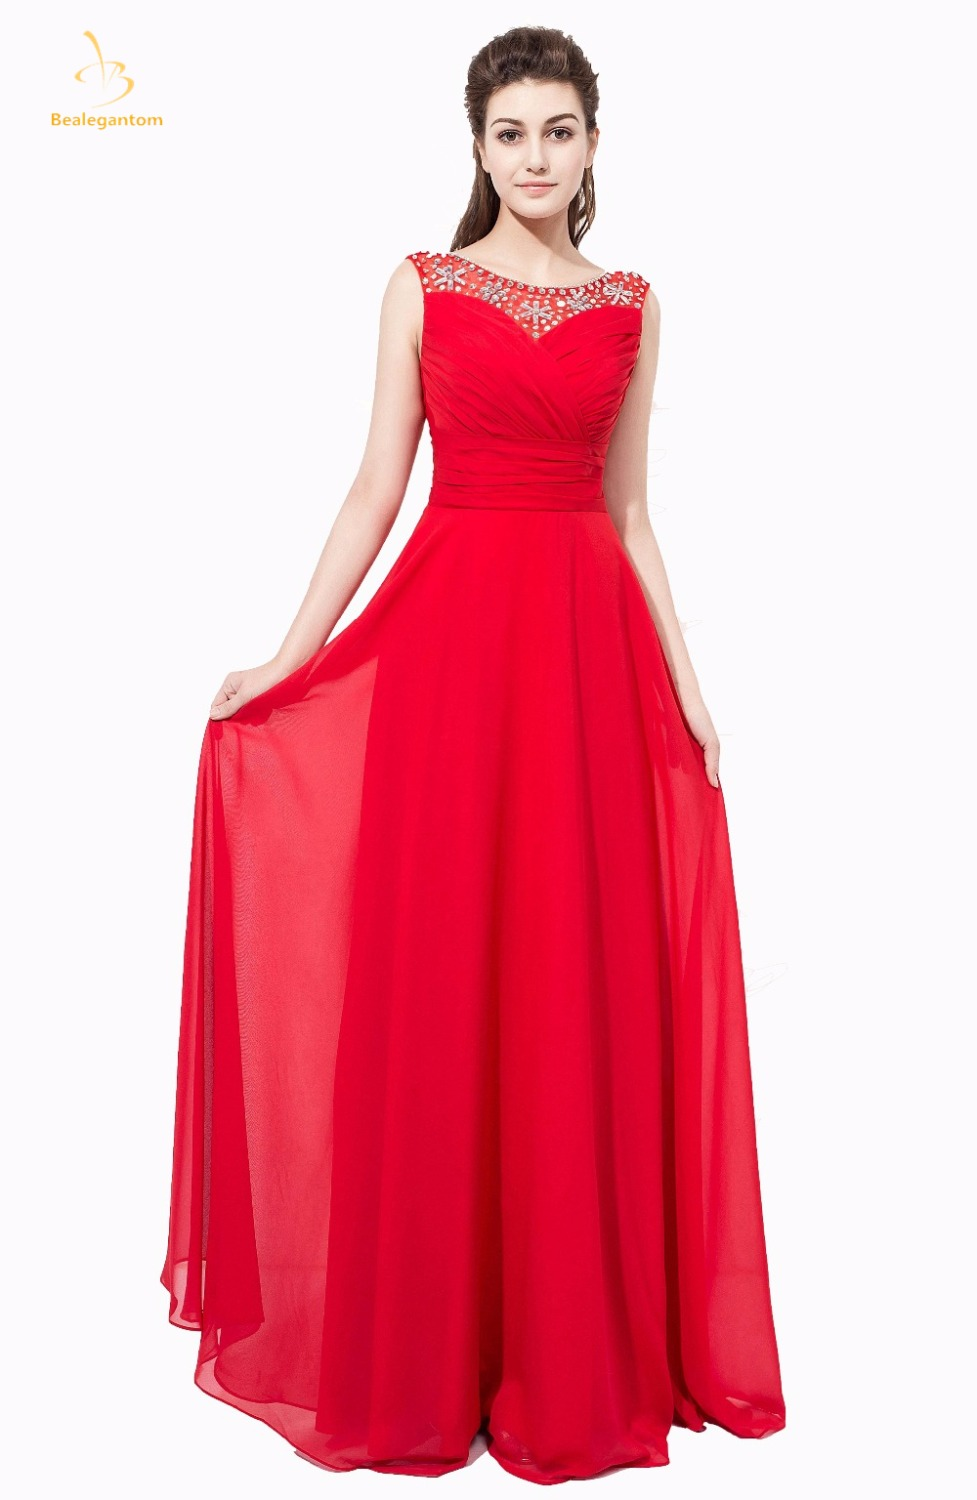 Bealegantom Real Photo 2018 Sweetheart Red   Prom     Dresses   With Lace Up Formal Evening Party Gowns Vestido In Stock QA1368